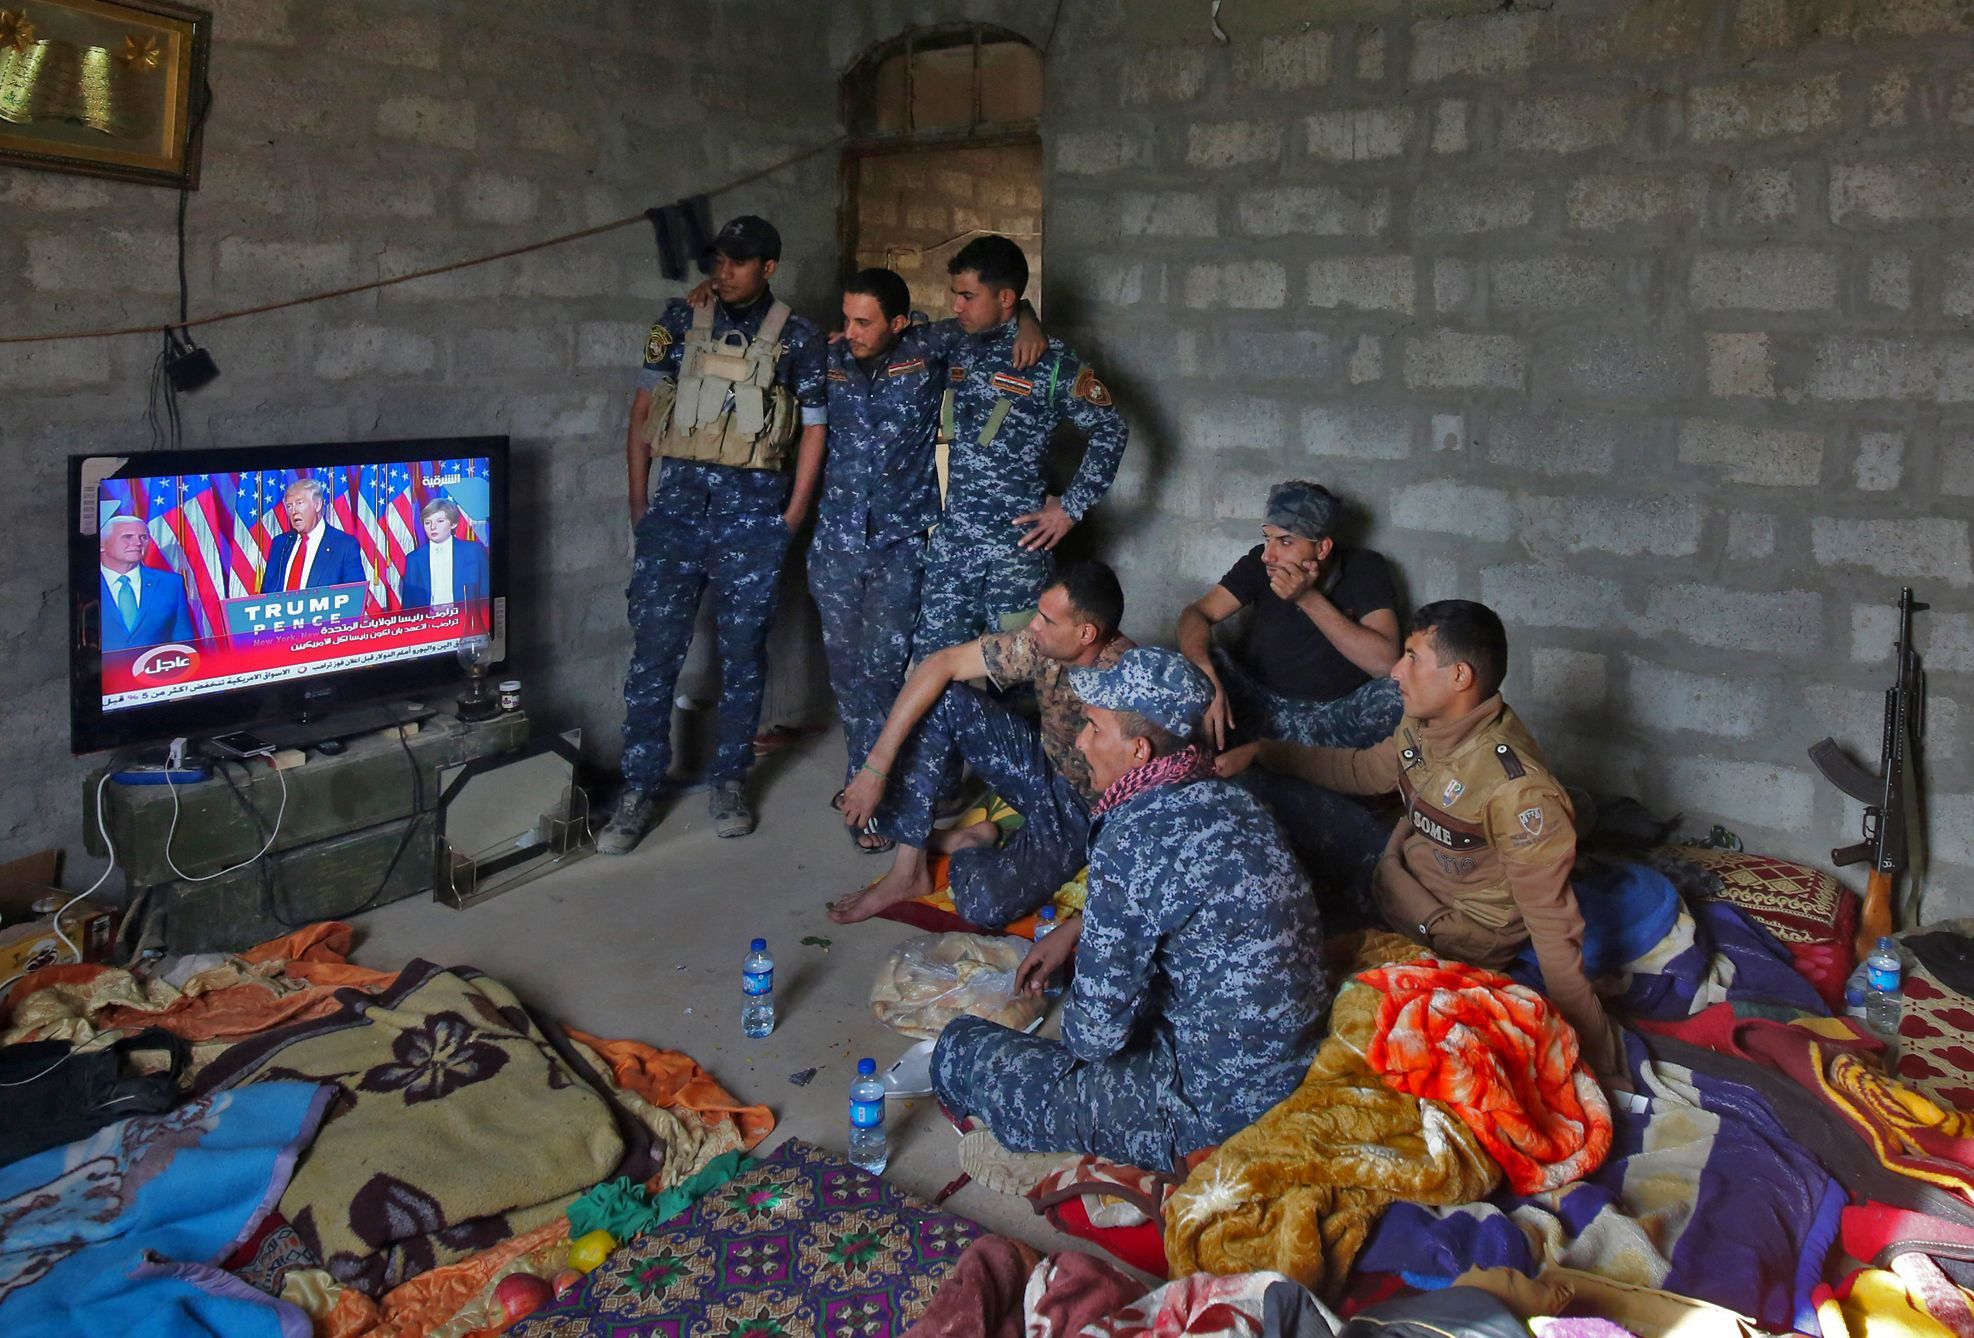 Members of the Iraqi forces watch President-elect Donald Trump give a speech after he won the U.S. presidential elections on a TV set while resting in the village of Arbid, on the southern outskirts of Mosul, on Nov. 9, 2016.